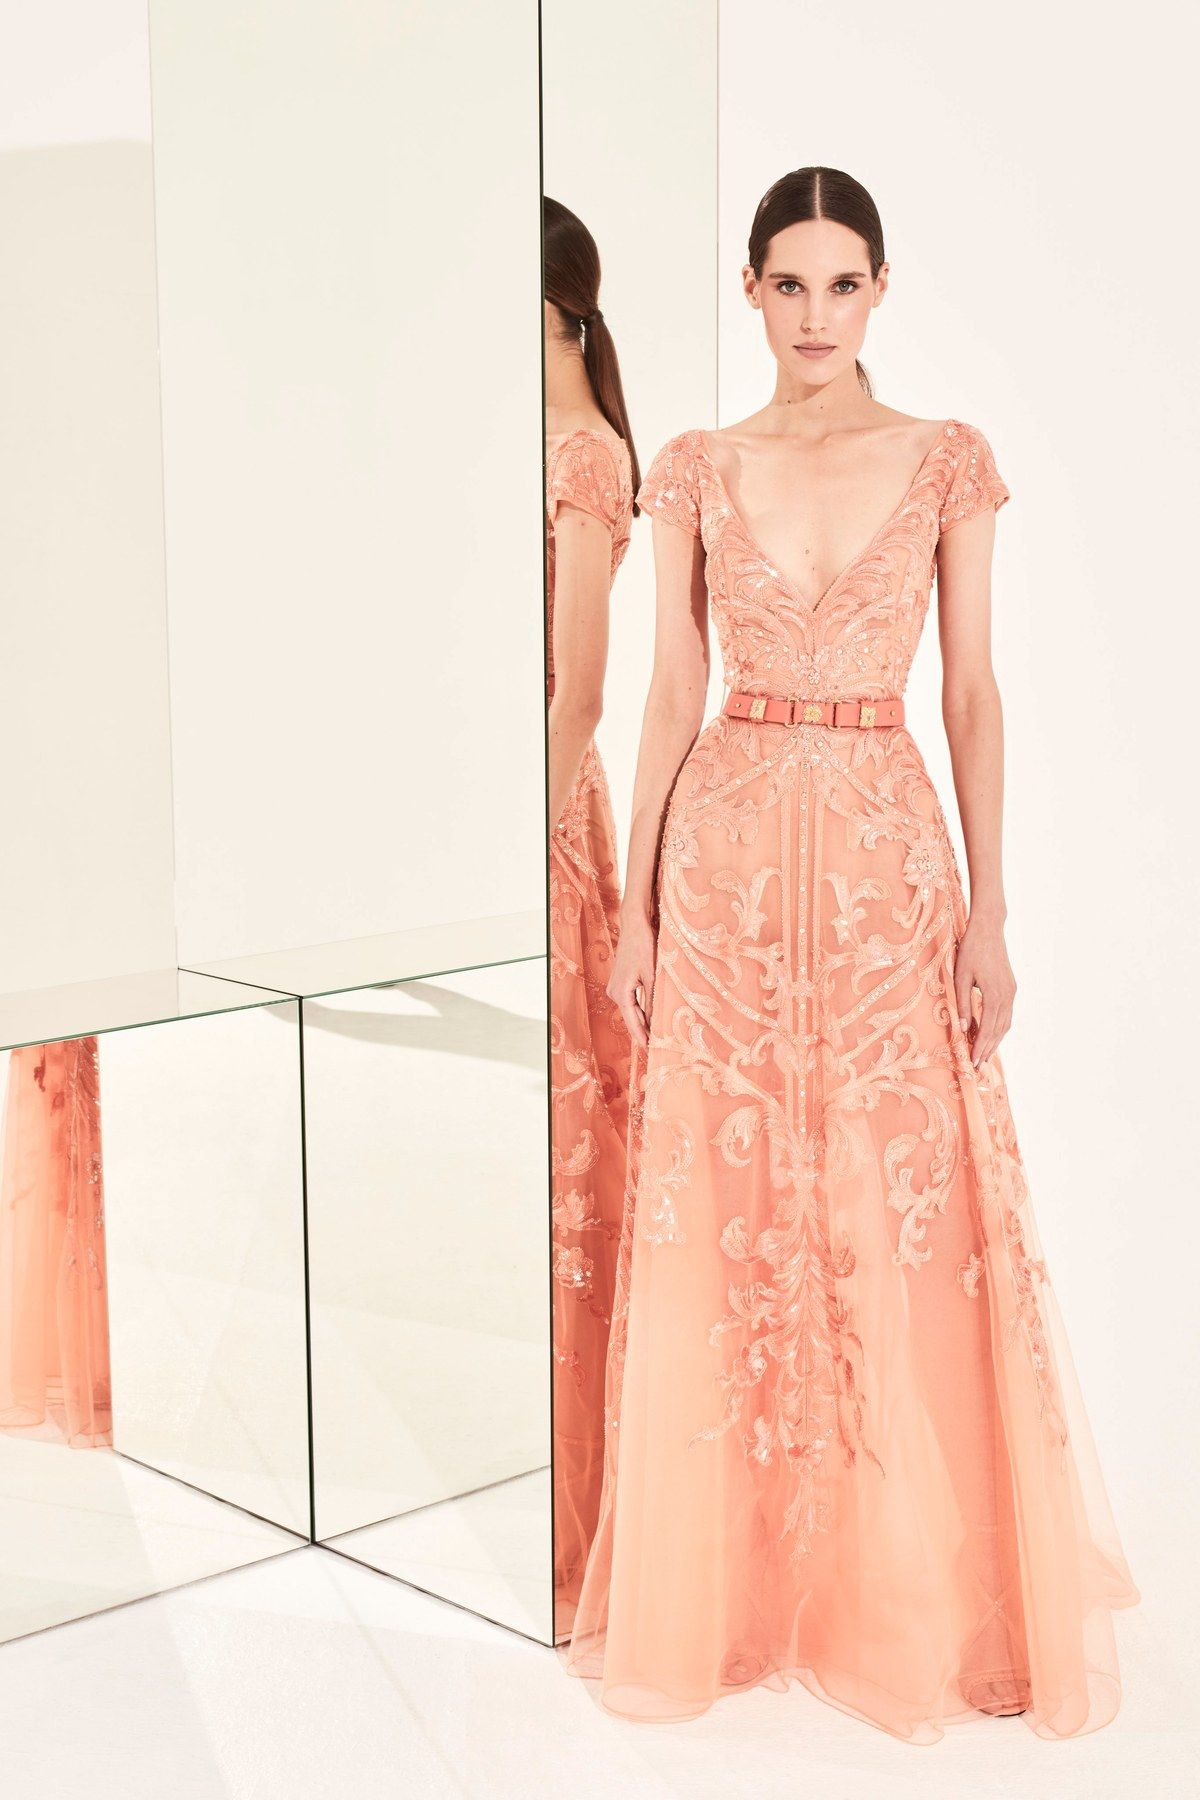 Zuhair Murad Spring 2020 ReadytoWear Fashion Show (With